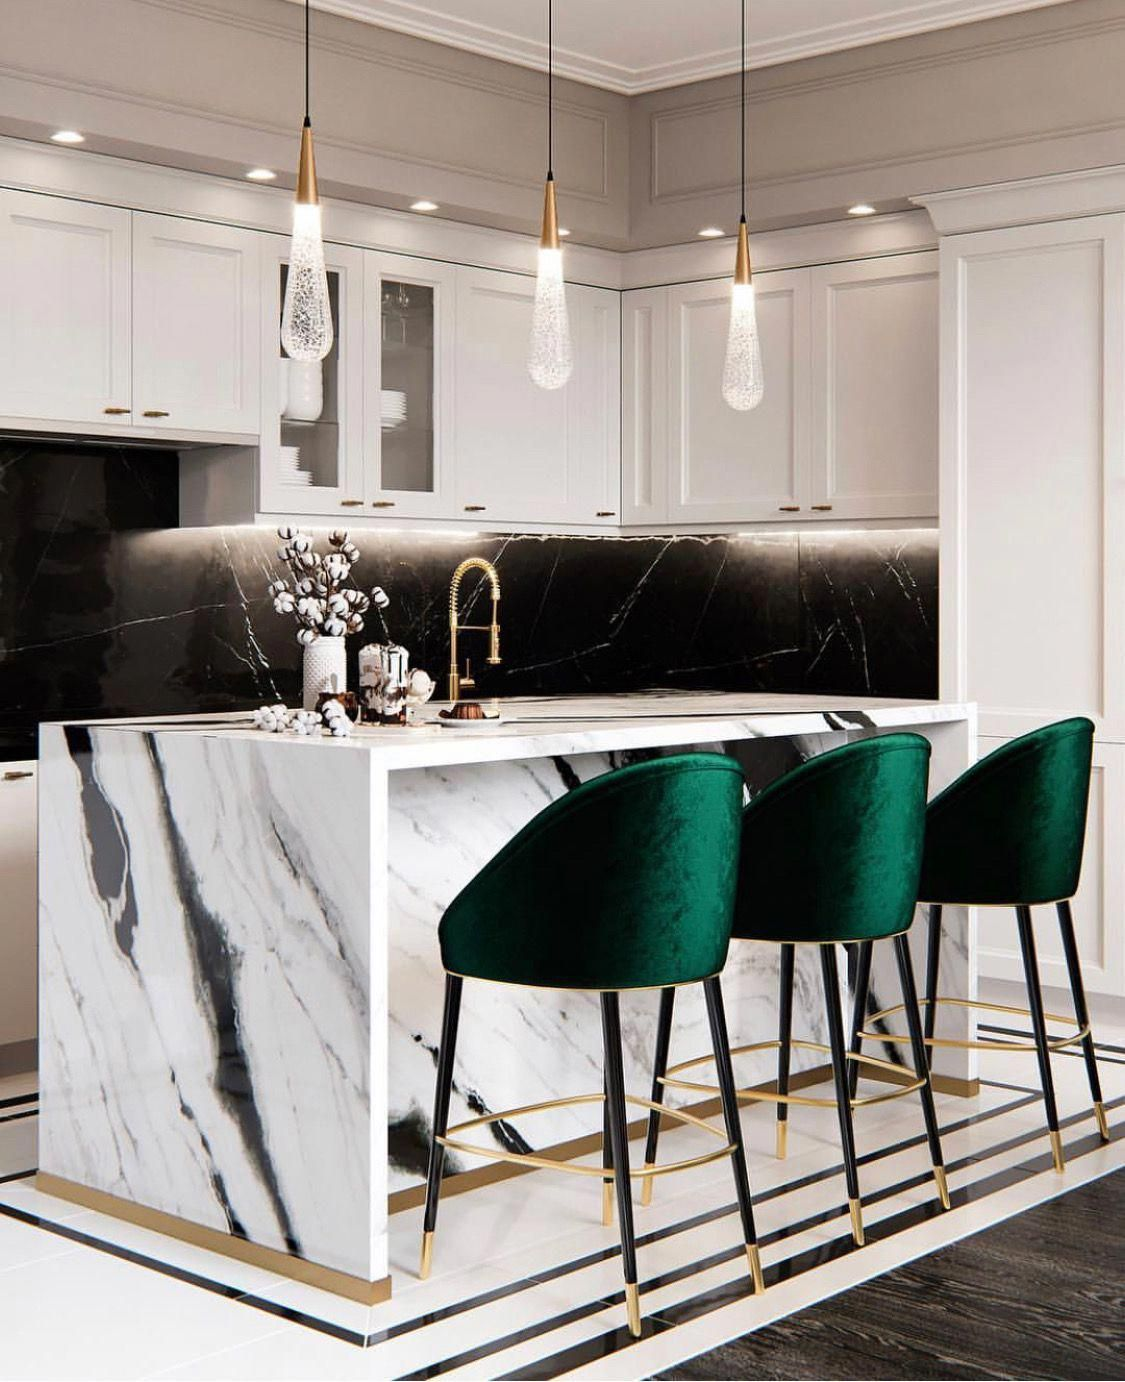 loving the emerald green modernhomedecorbedroom kitchen decor modern home decor kitchen on kitchen ideas emerald green id=40046